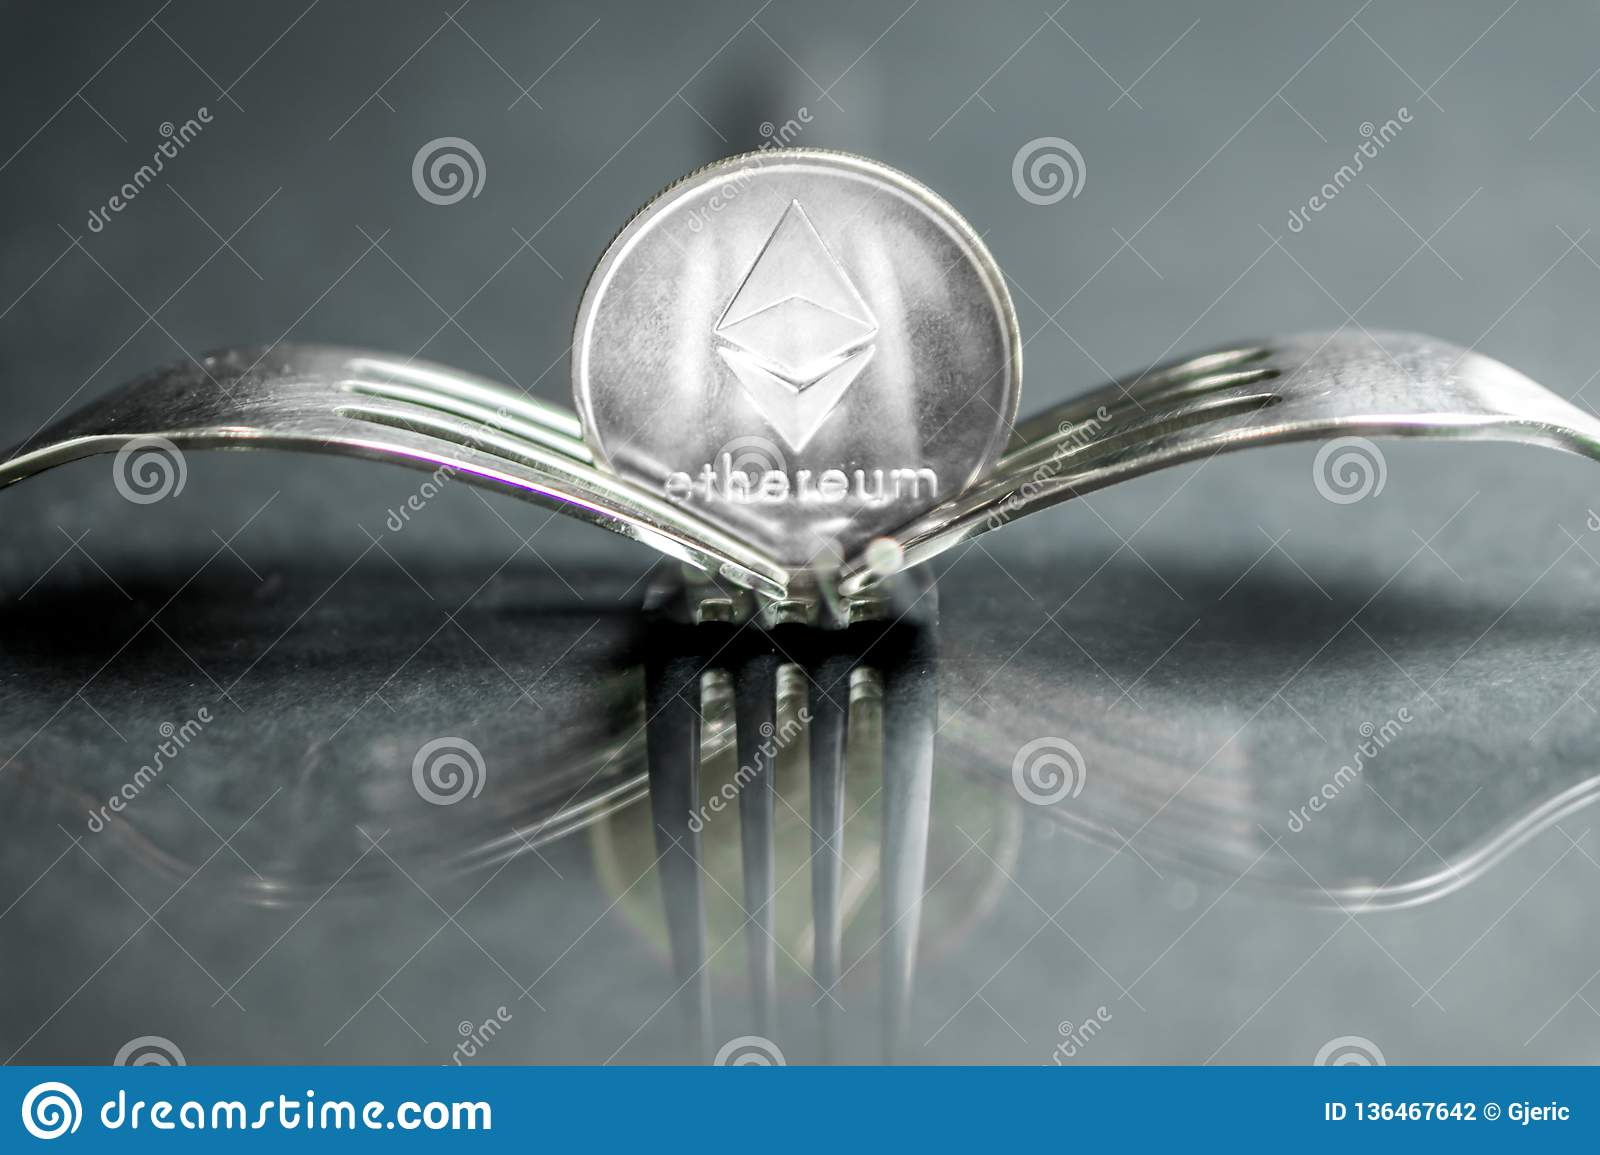 Ethereum Cryptocurreny Coin Placed Between Forks With Reflection